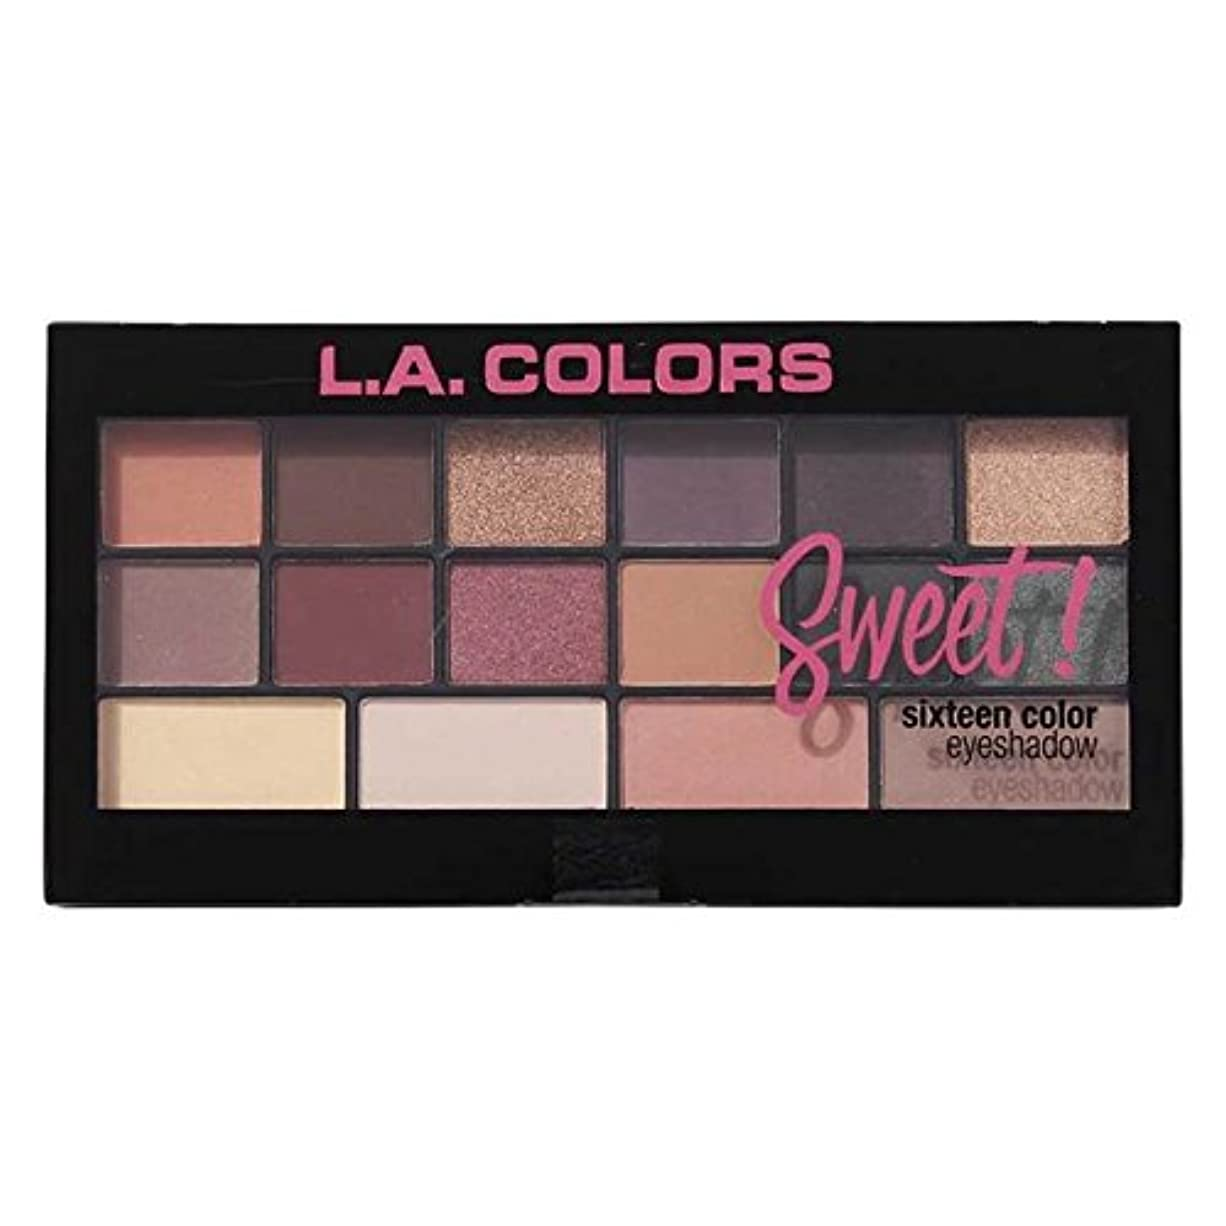 (3 Pack) L.A. Colors Sweet! 16 Color Eyeshadow Palette - Seductive (並行輸入品)